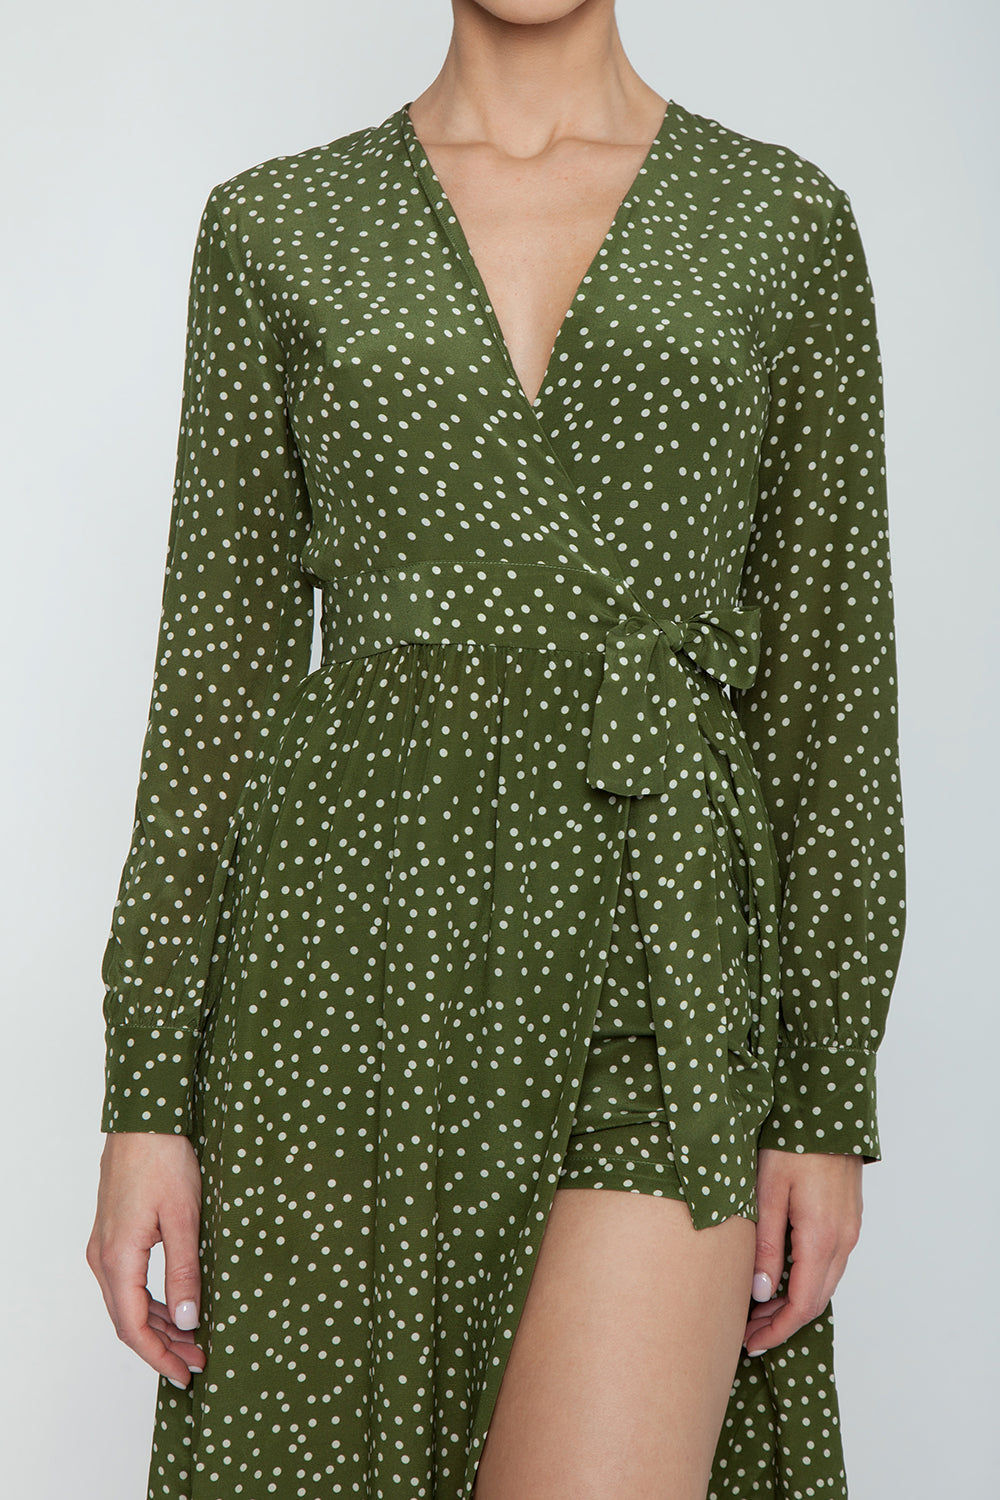 ADRIANA DEGREAS Silk Crepe De Chine Long Cross Front Dress With Shorts - Mille Punti Green Dot Print Dress | Mille Punti Green Dot Print| Adriana Degreas Silk Crepe De Chine Long Cross Front Dress With Shorts - Mille Punti Green Dot Print Long sleeve maxi dress  Wrap style  Shorts included Detail View